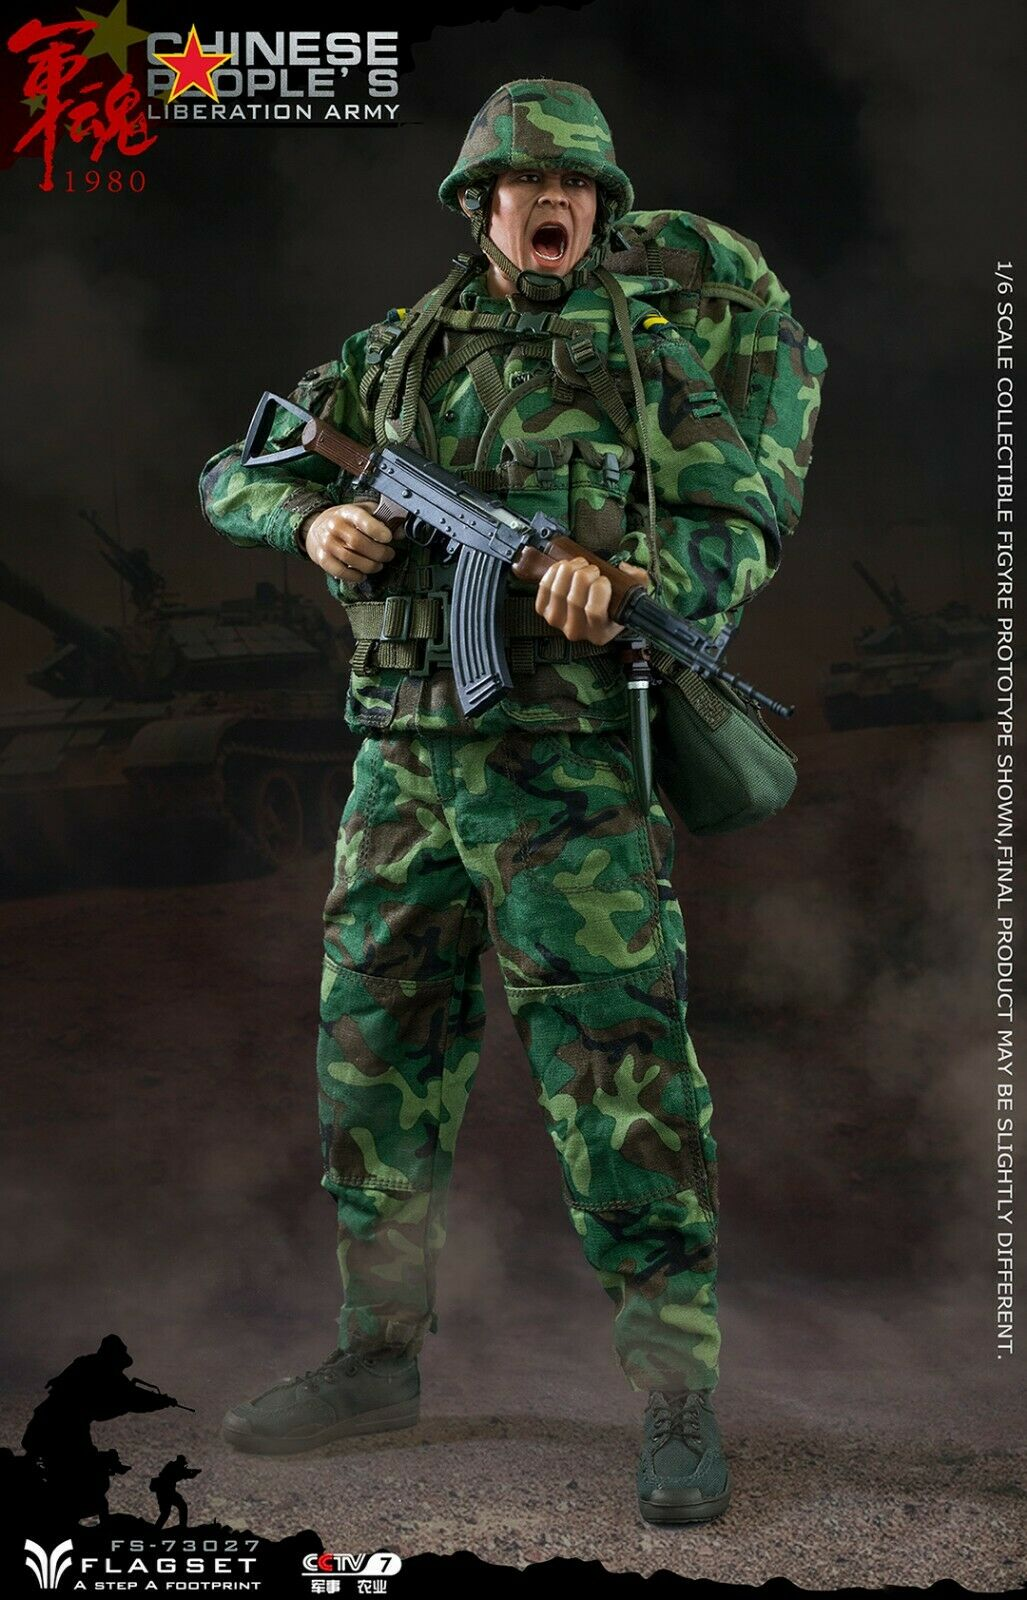 FLAGSET FS73027 1 6 Army Soul Series 90's Steel Division Collectible Figure Toys